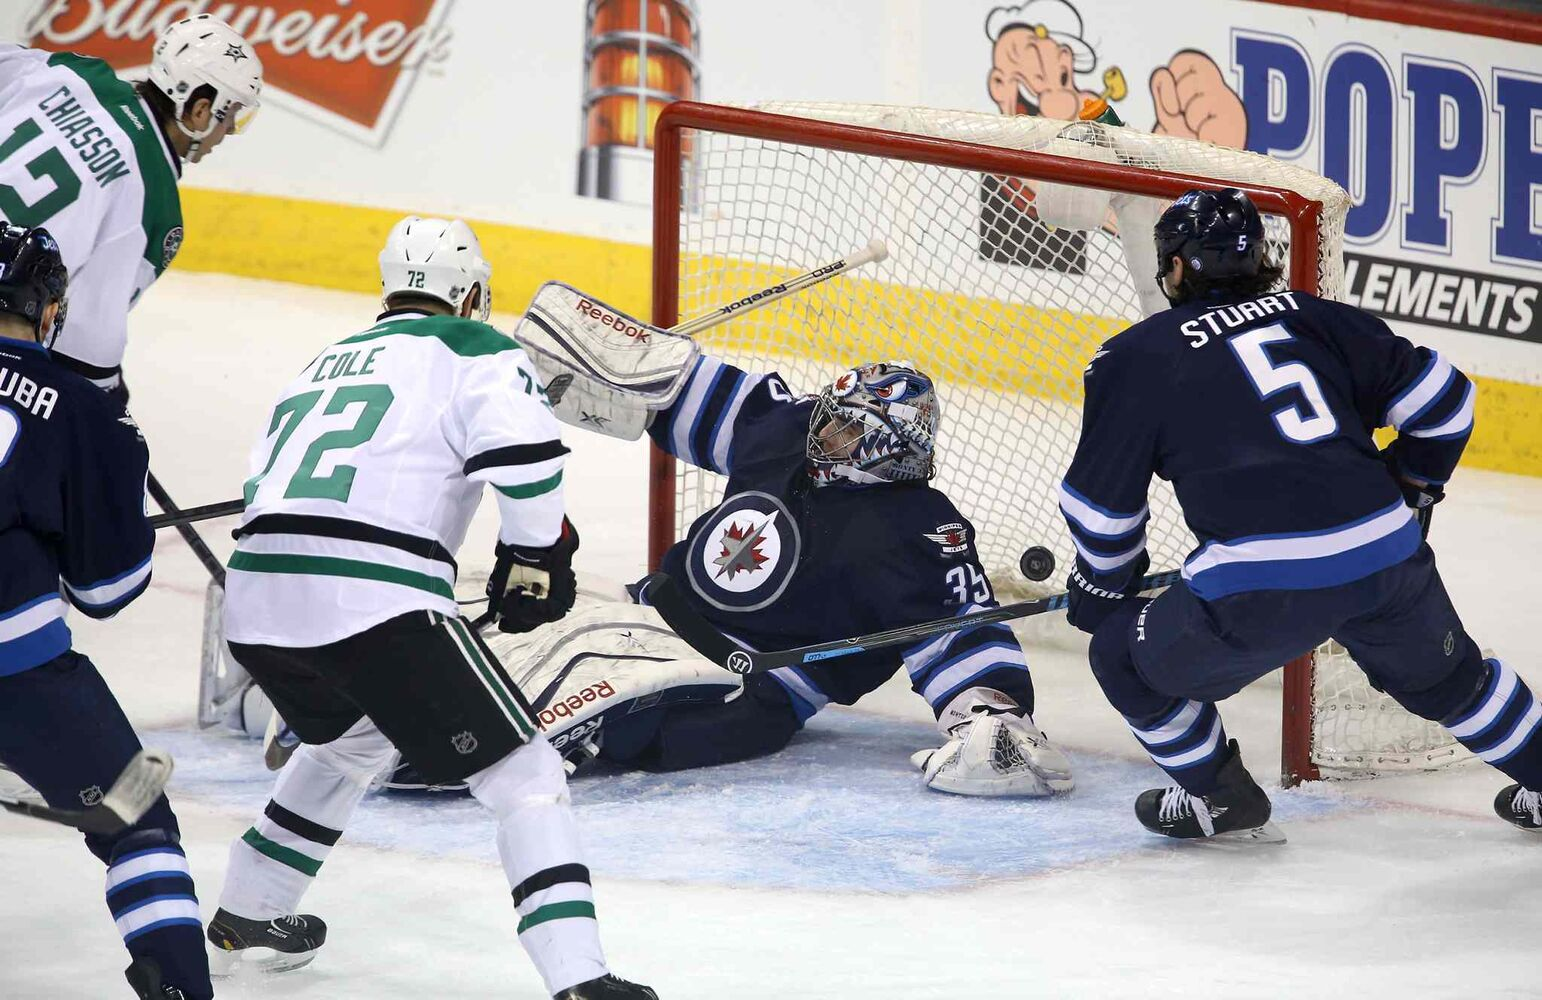 The Dallas Stars Alex Chiasson (12) scores on Winnipeg Jets goaltender Al Montoya in the first period.